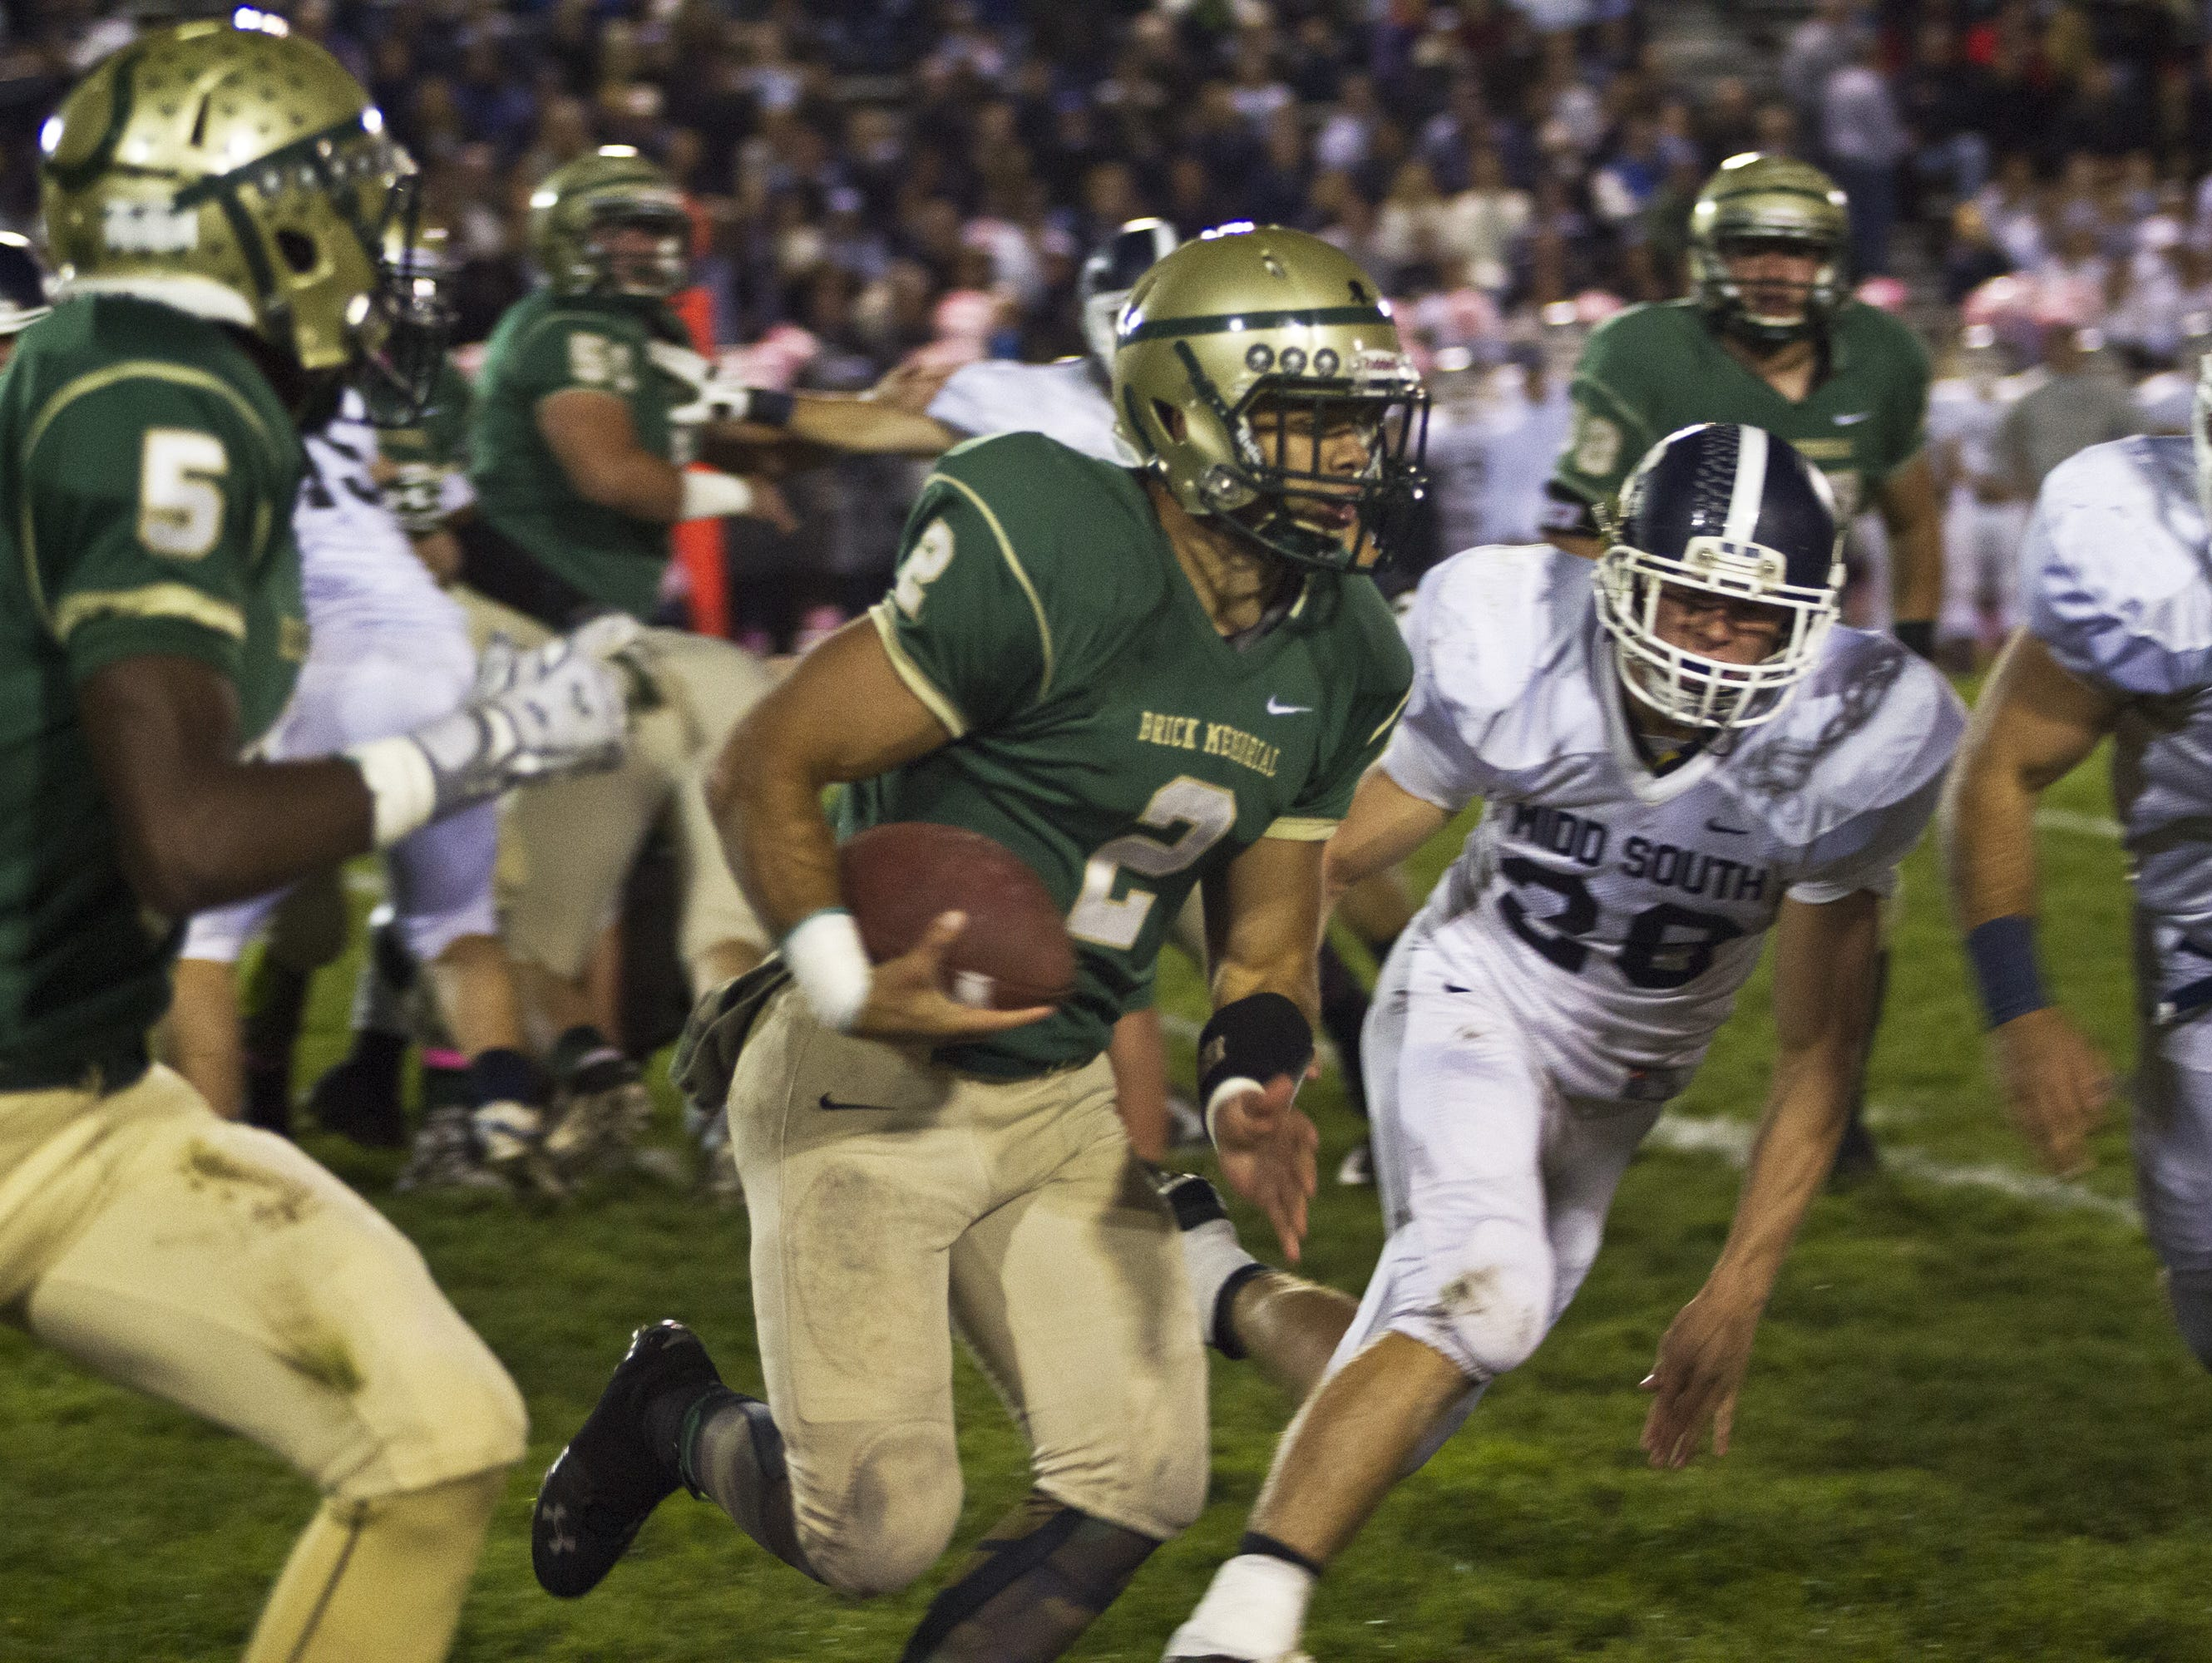 Brick Memorial, led by senior quarterback Tim Santiago, is our selection to win the NJSIAA Central Group IV championship